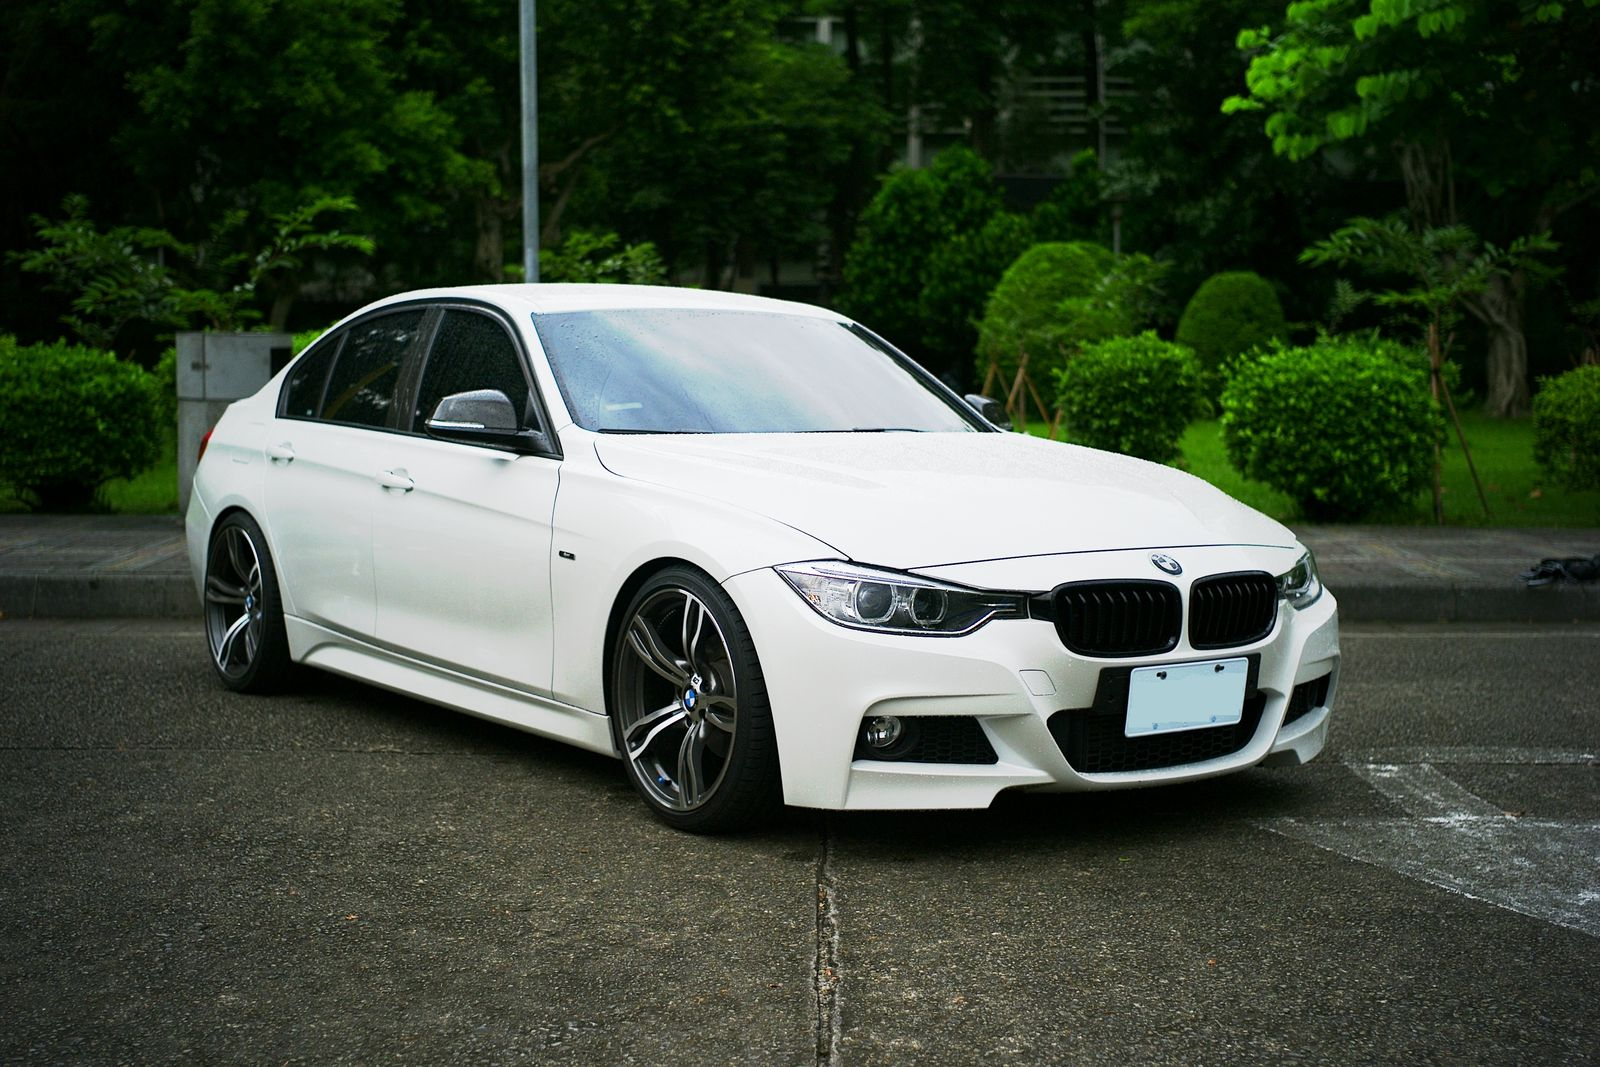 F30 M Sport Style 320 With Kw V3 And Few Other Cf Parts